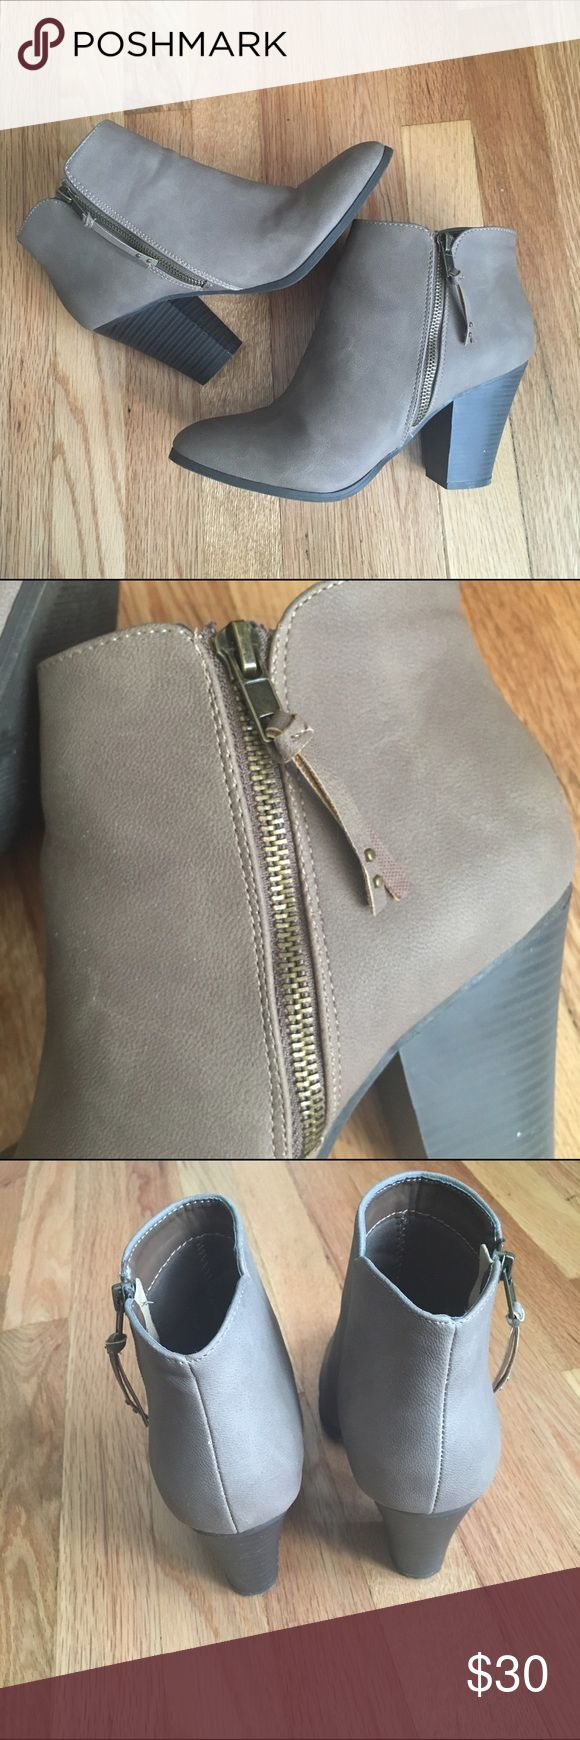 Charlotte Russe Taupe Booties PERFECT FOR FALL! These booties were only worn twice, like new condition. Charlotte Russe Shoes Ankle Boots & Booties